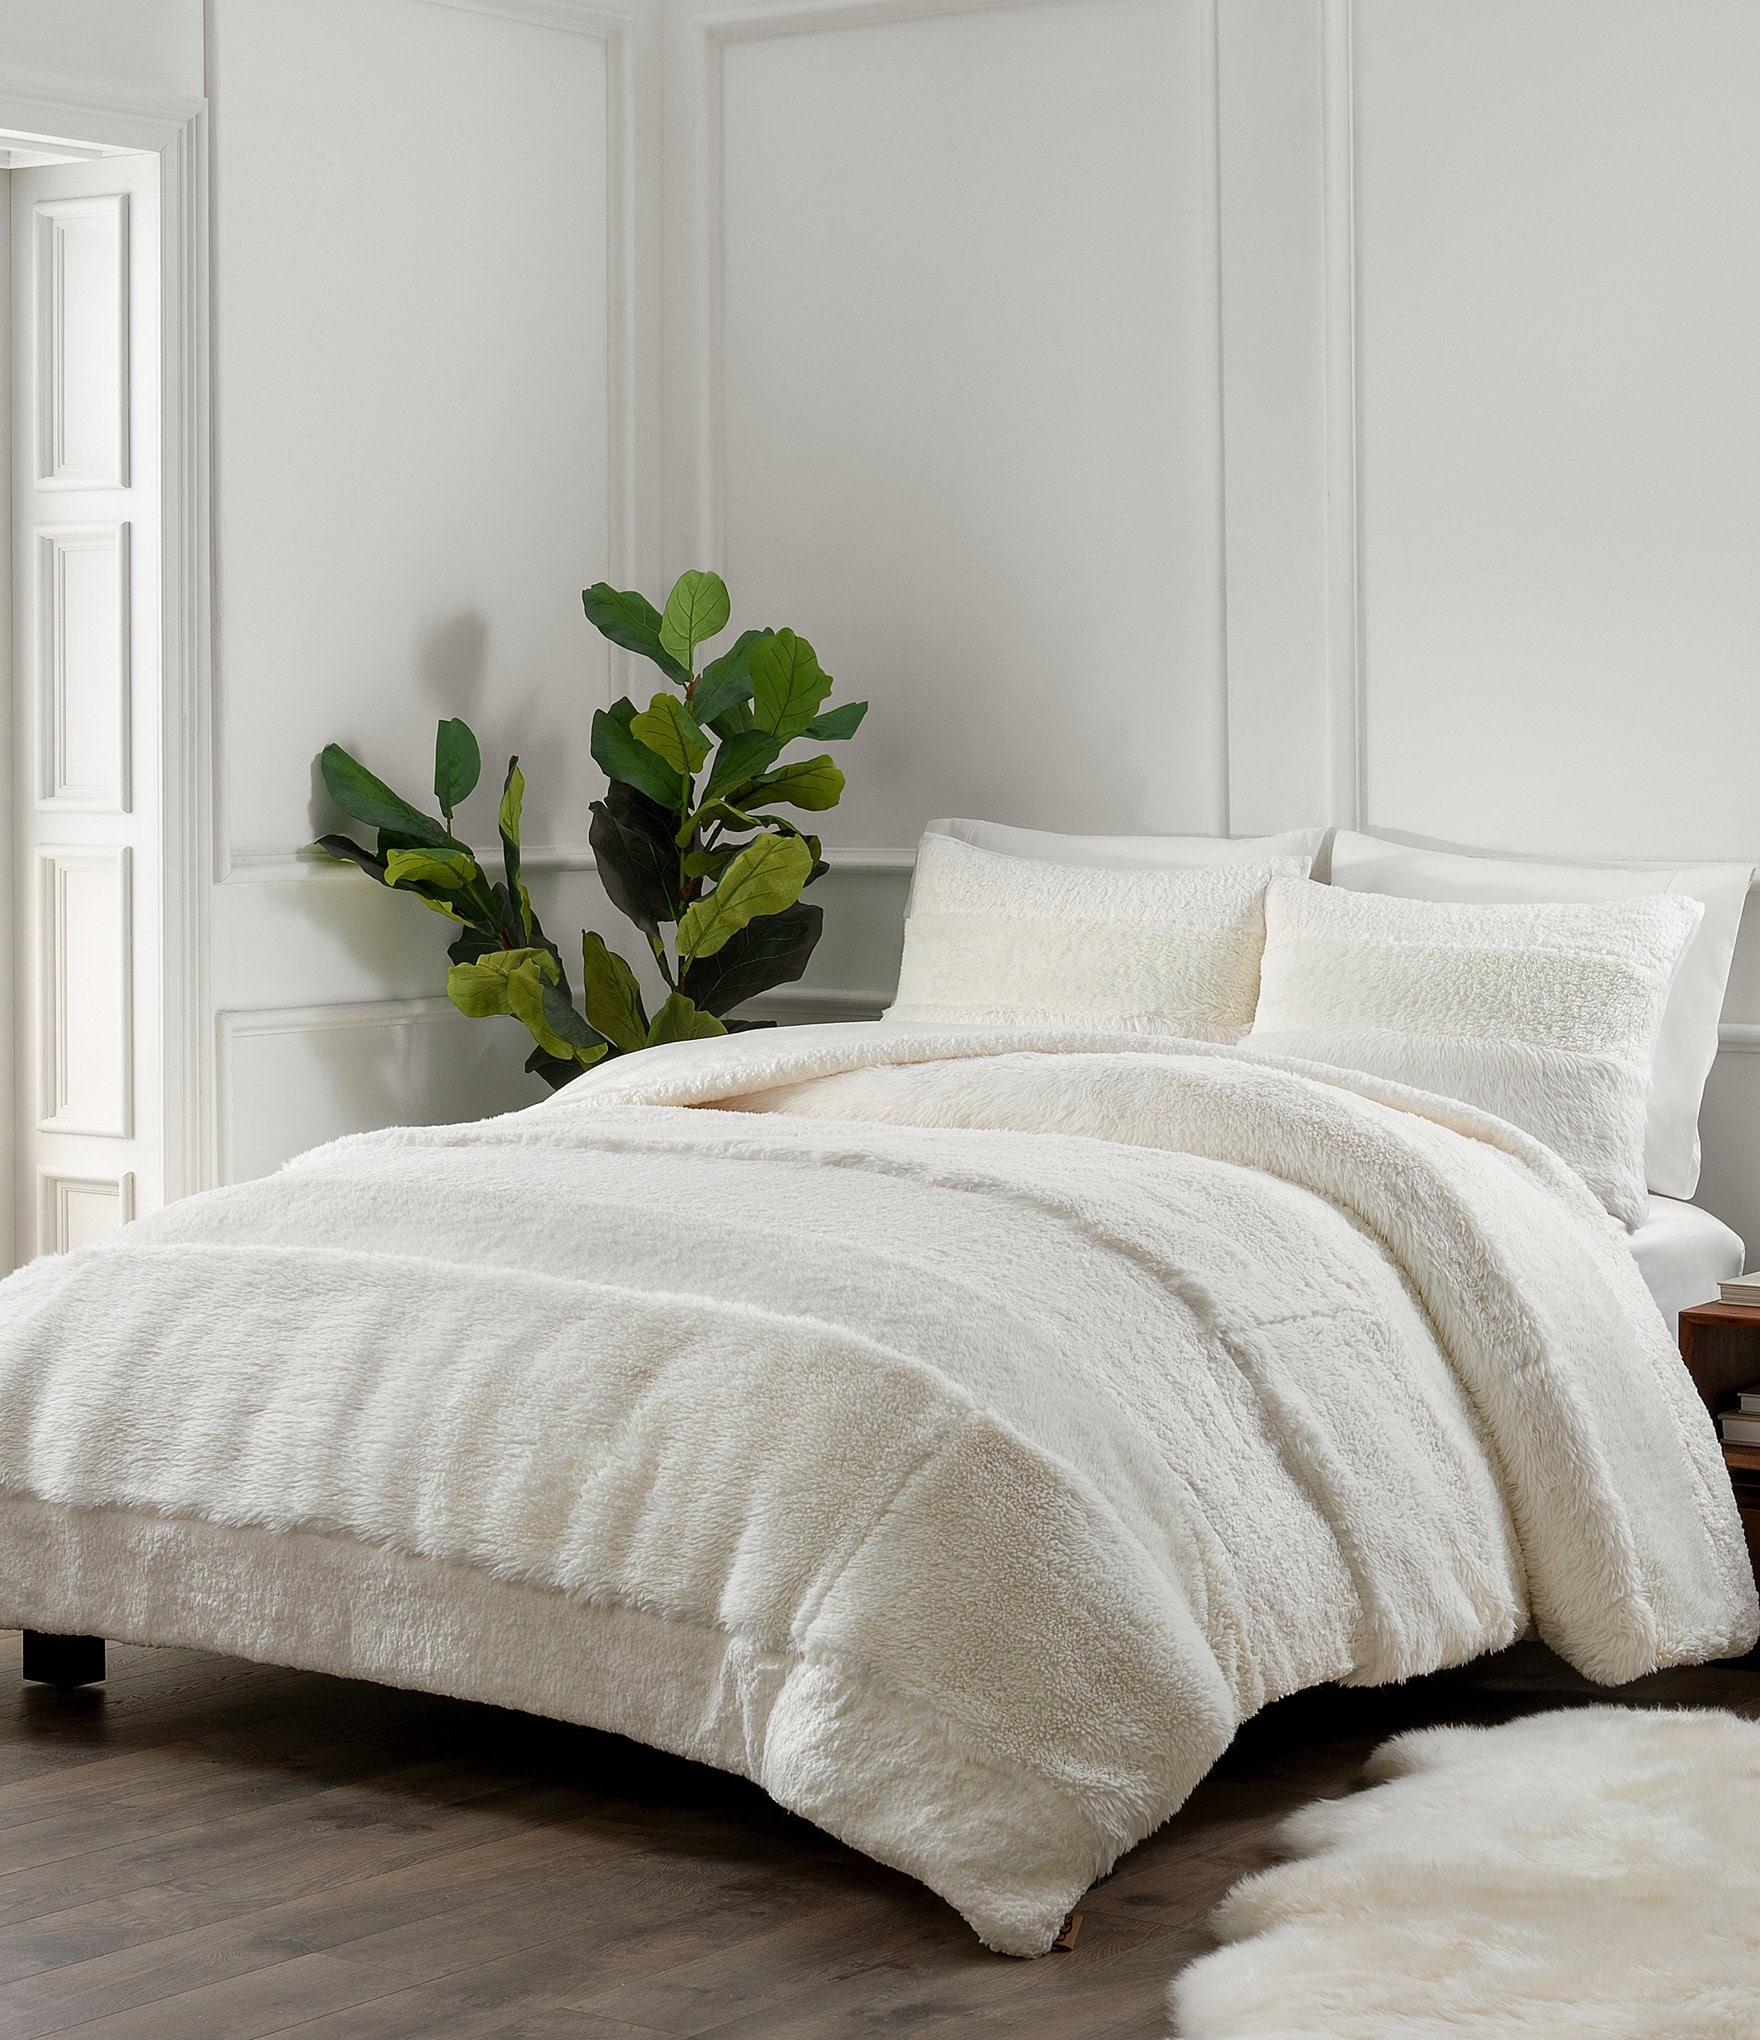 ugg lola pieced faux fur comforter mini set dillard s